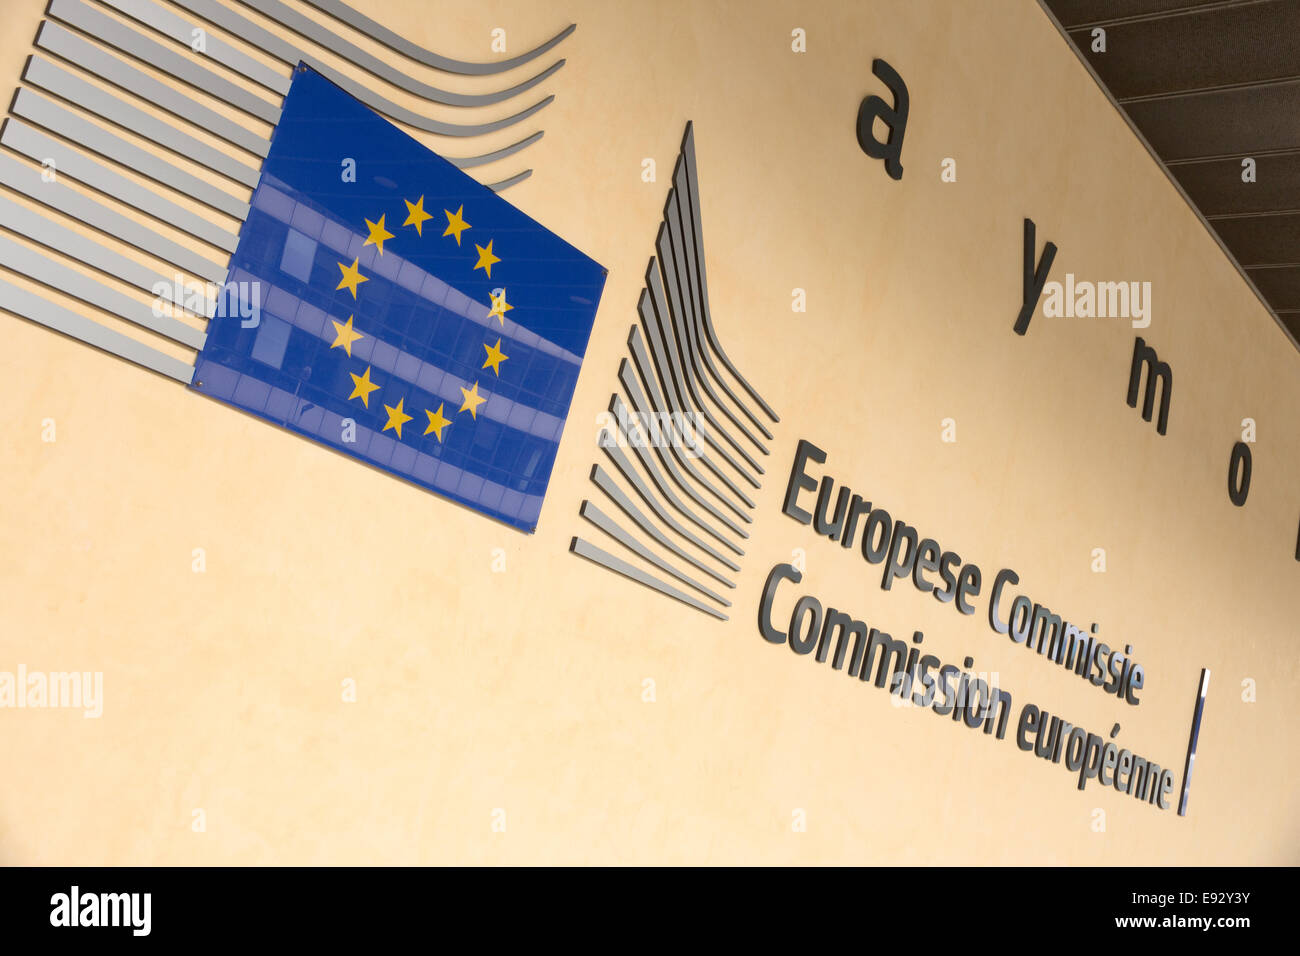 The Berlaymont building entrance in Brussels. Berlaymont is an office building and - Stock Image